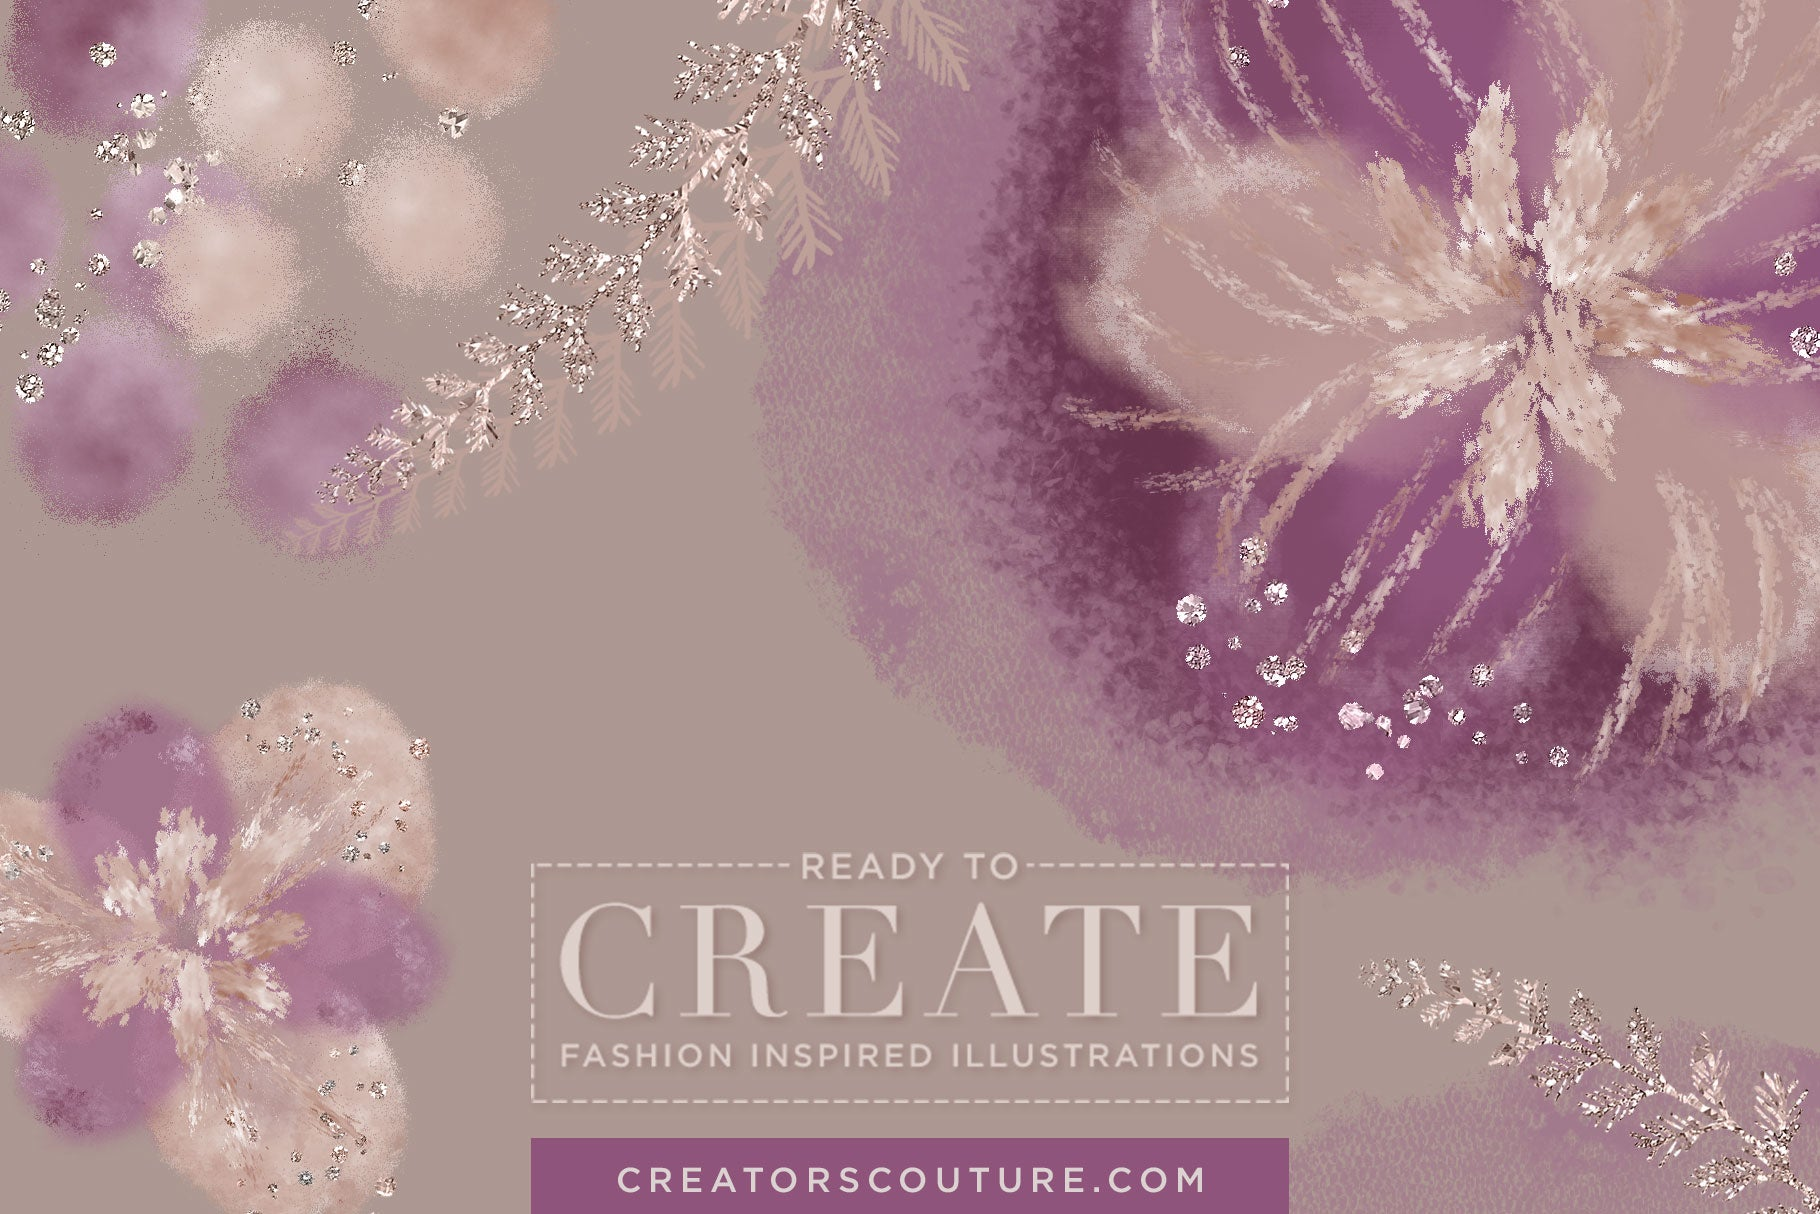 Delicate Floral & Fern Fantasies 2: Digital Clipart / Stock Illustration - Creators Couture